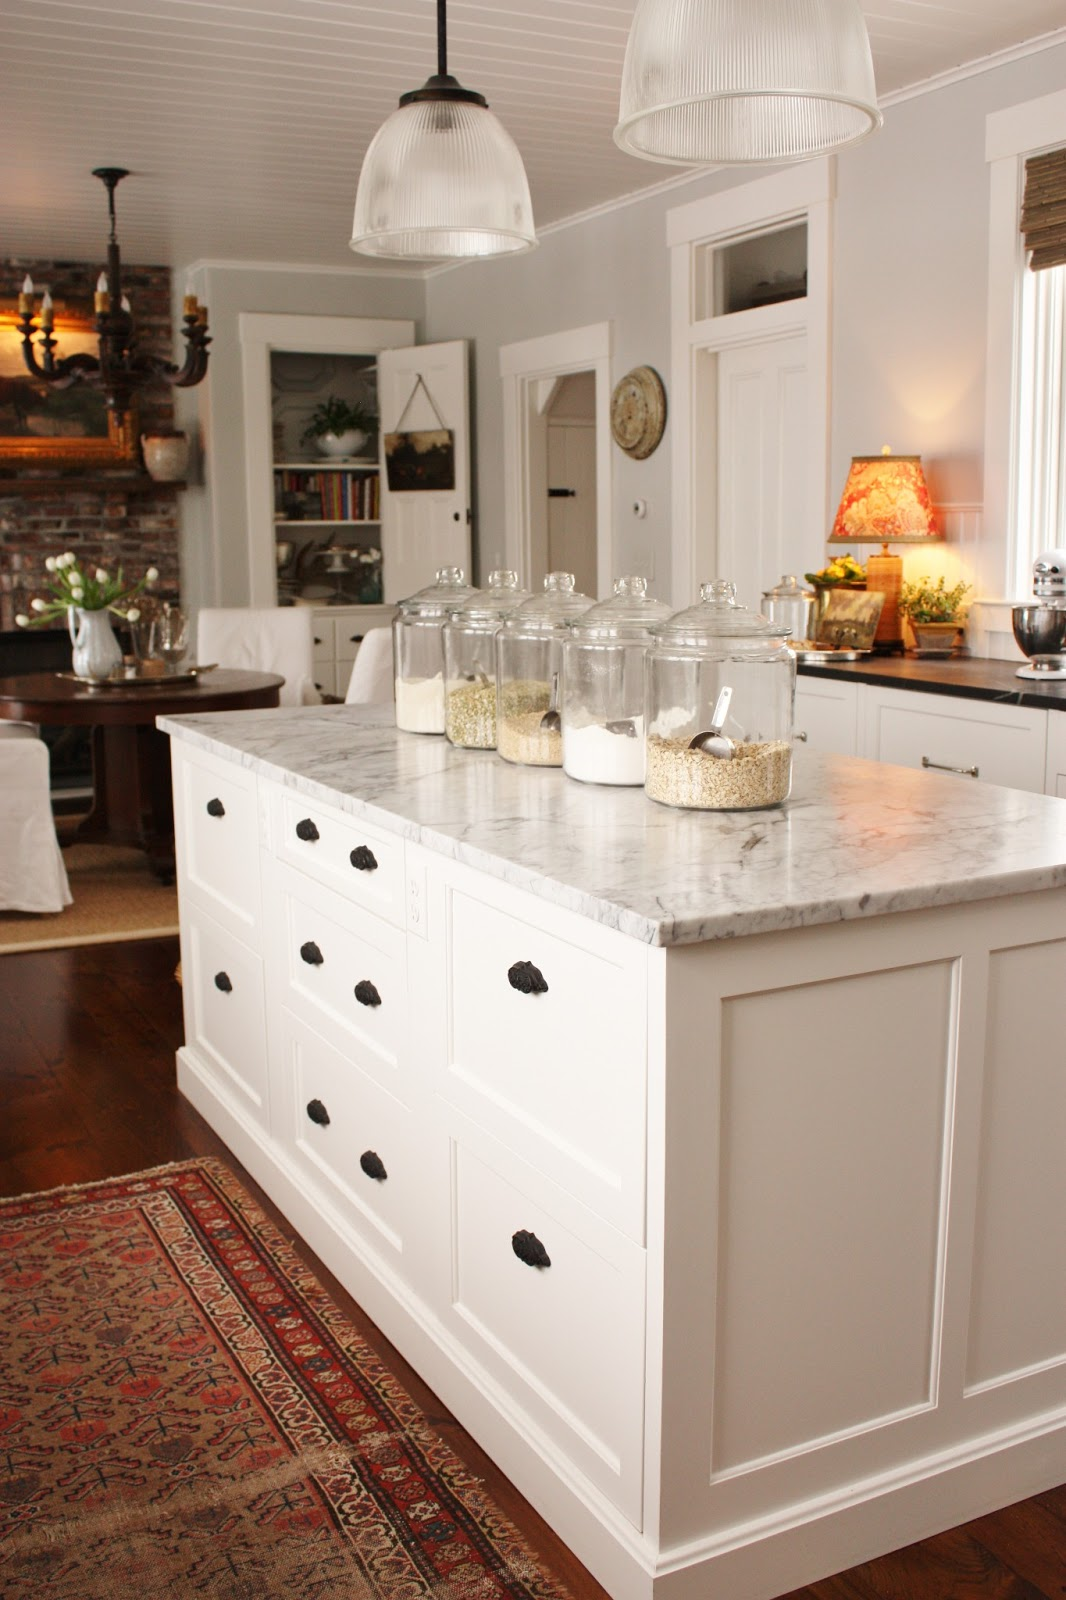 Islands For The Kitchen: For The Love Of A House: Kitchen Drawers- The Island